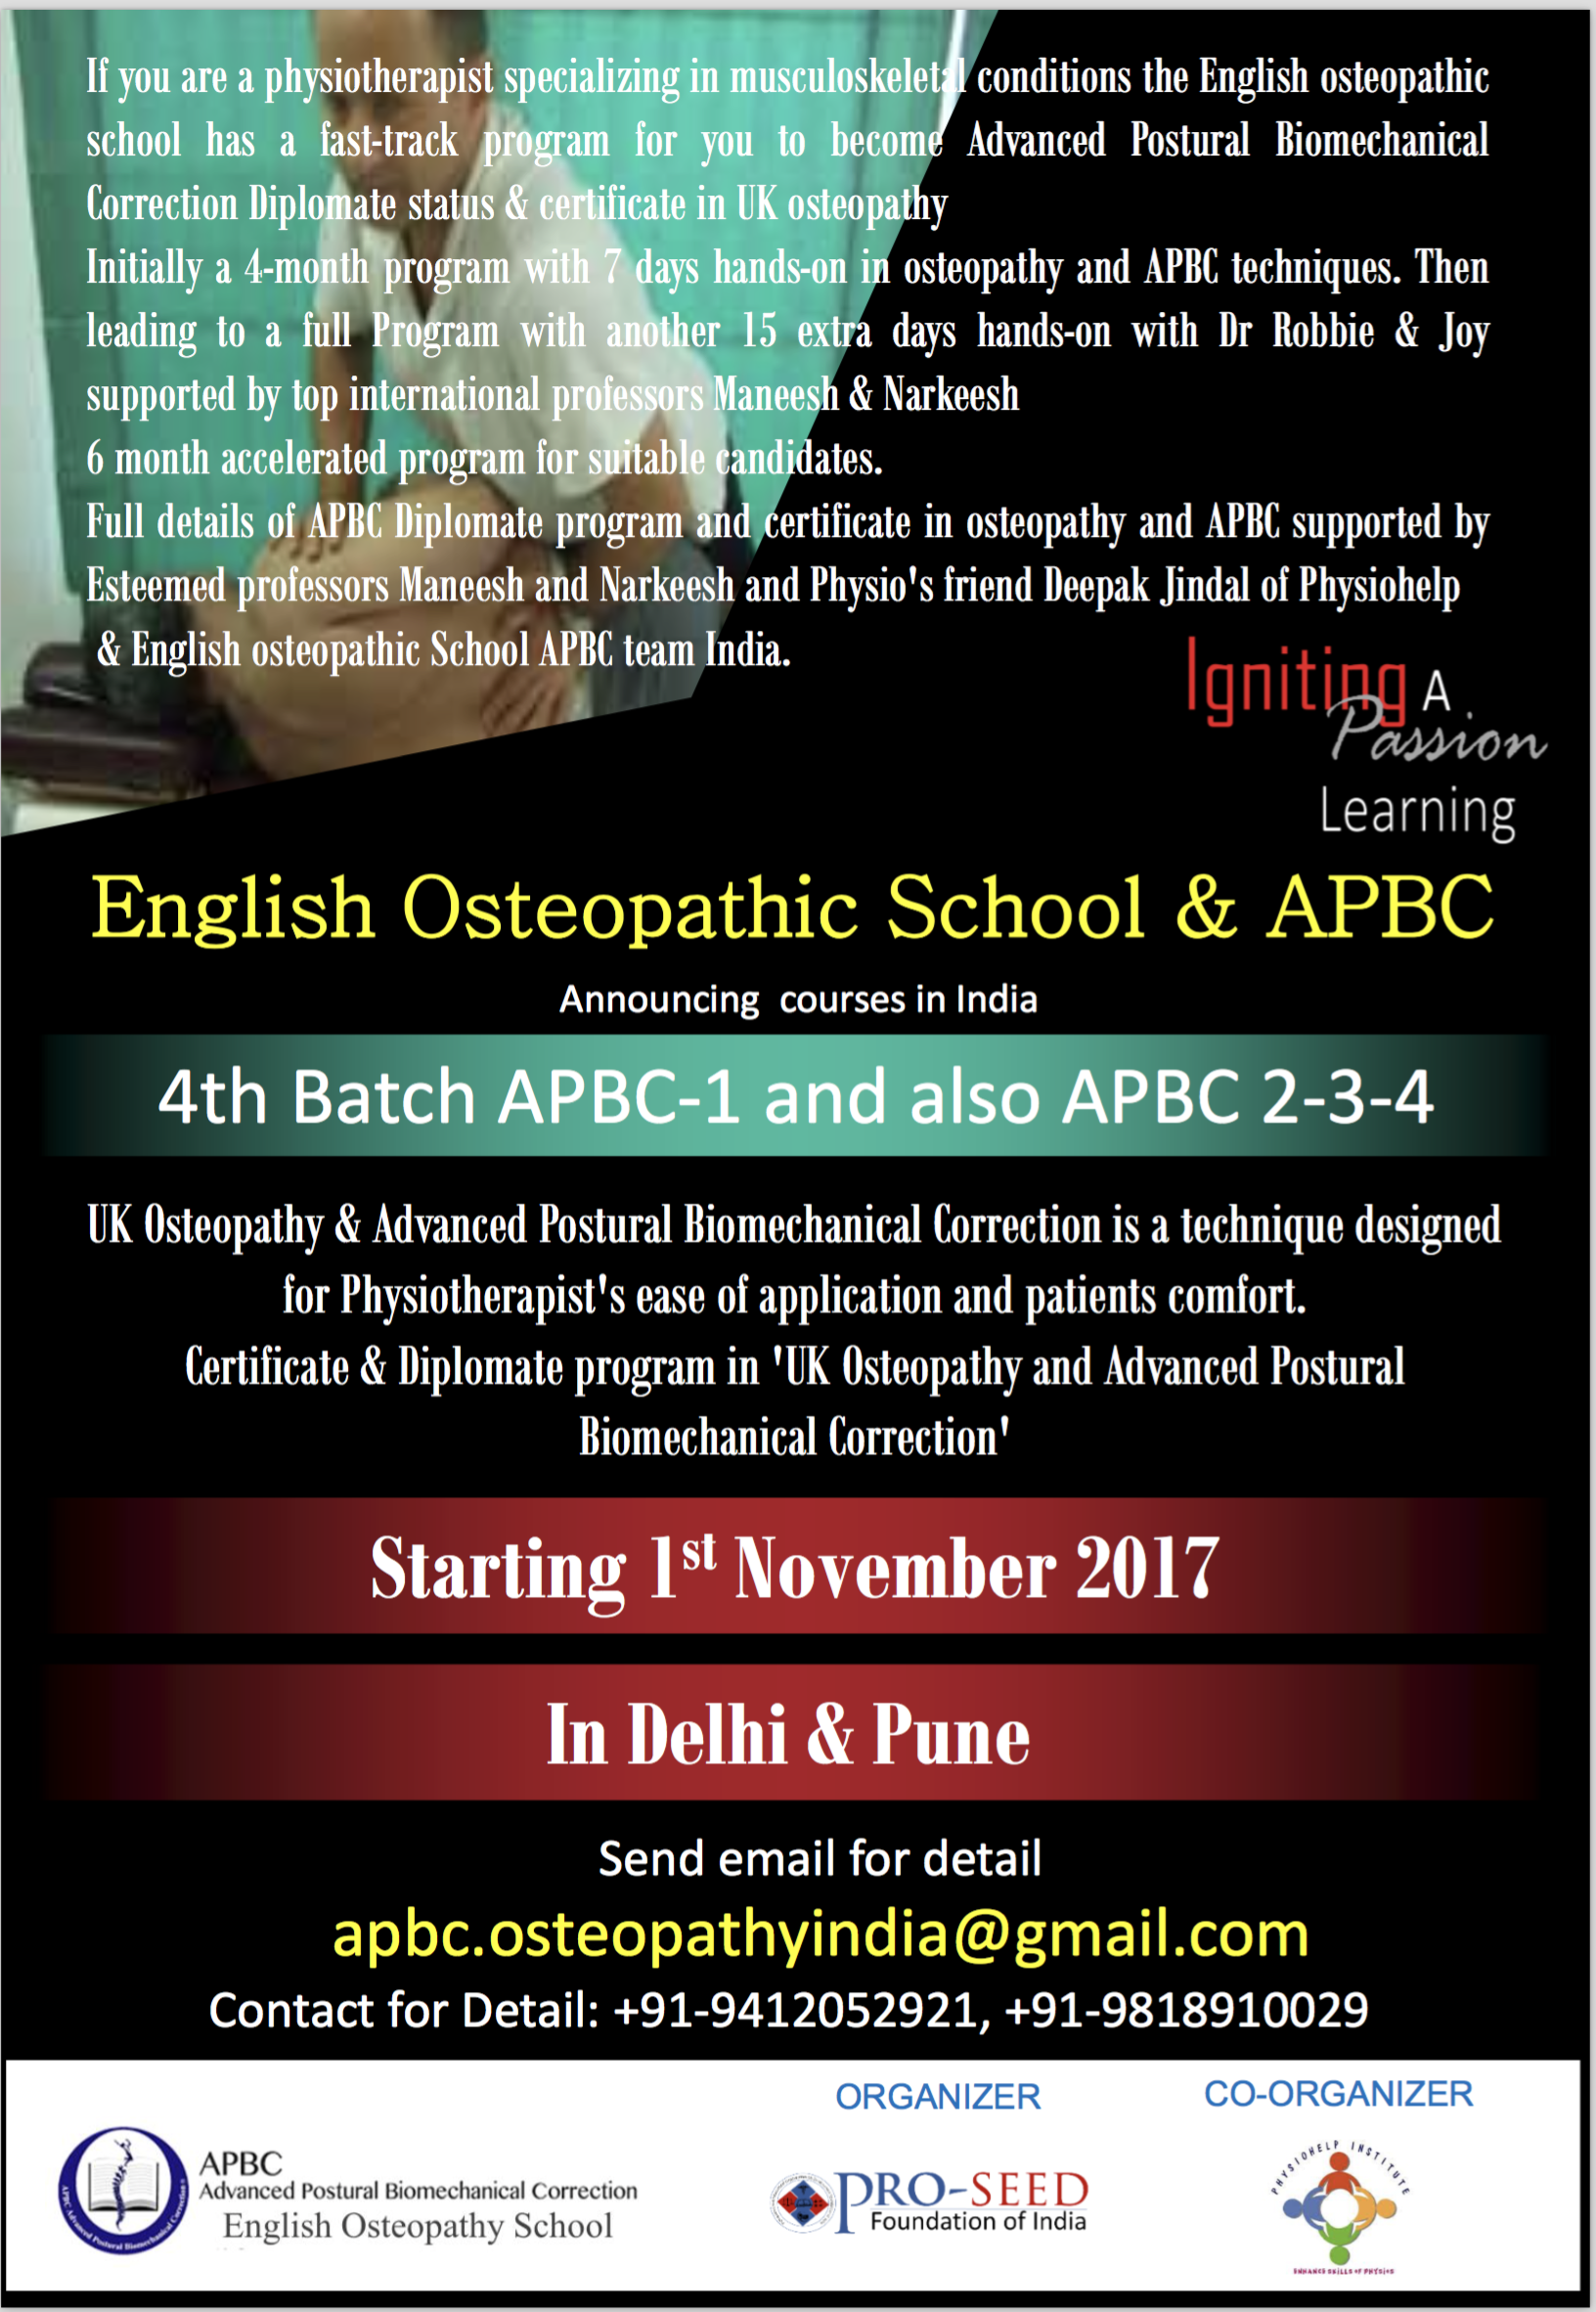 Certificate in osteopathy and APBC Diplomate program  Starts